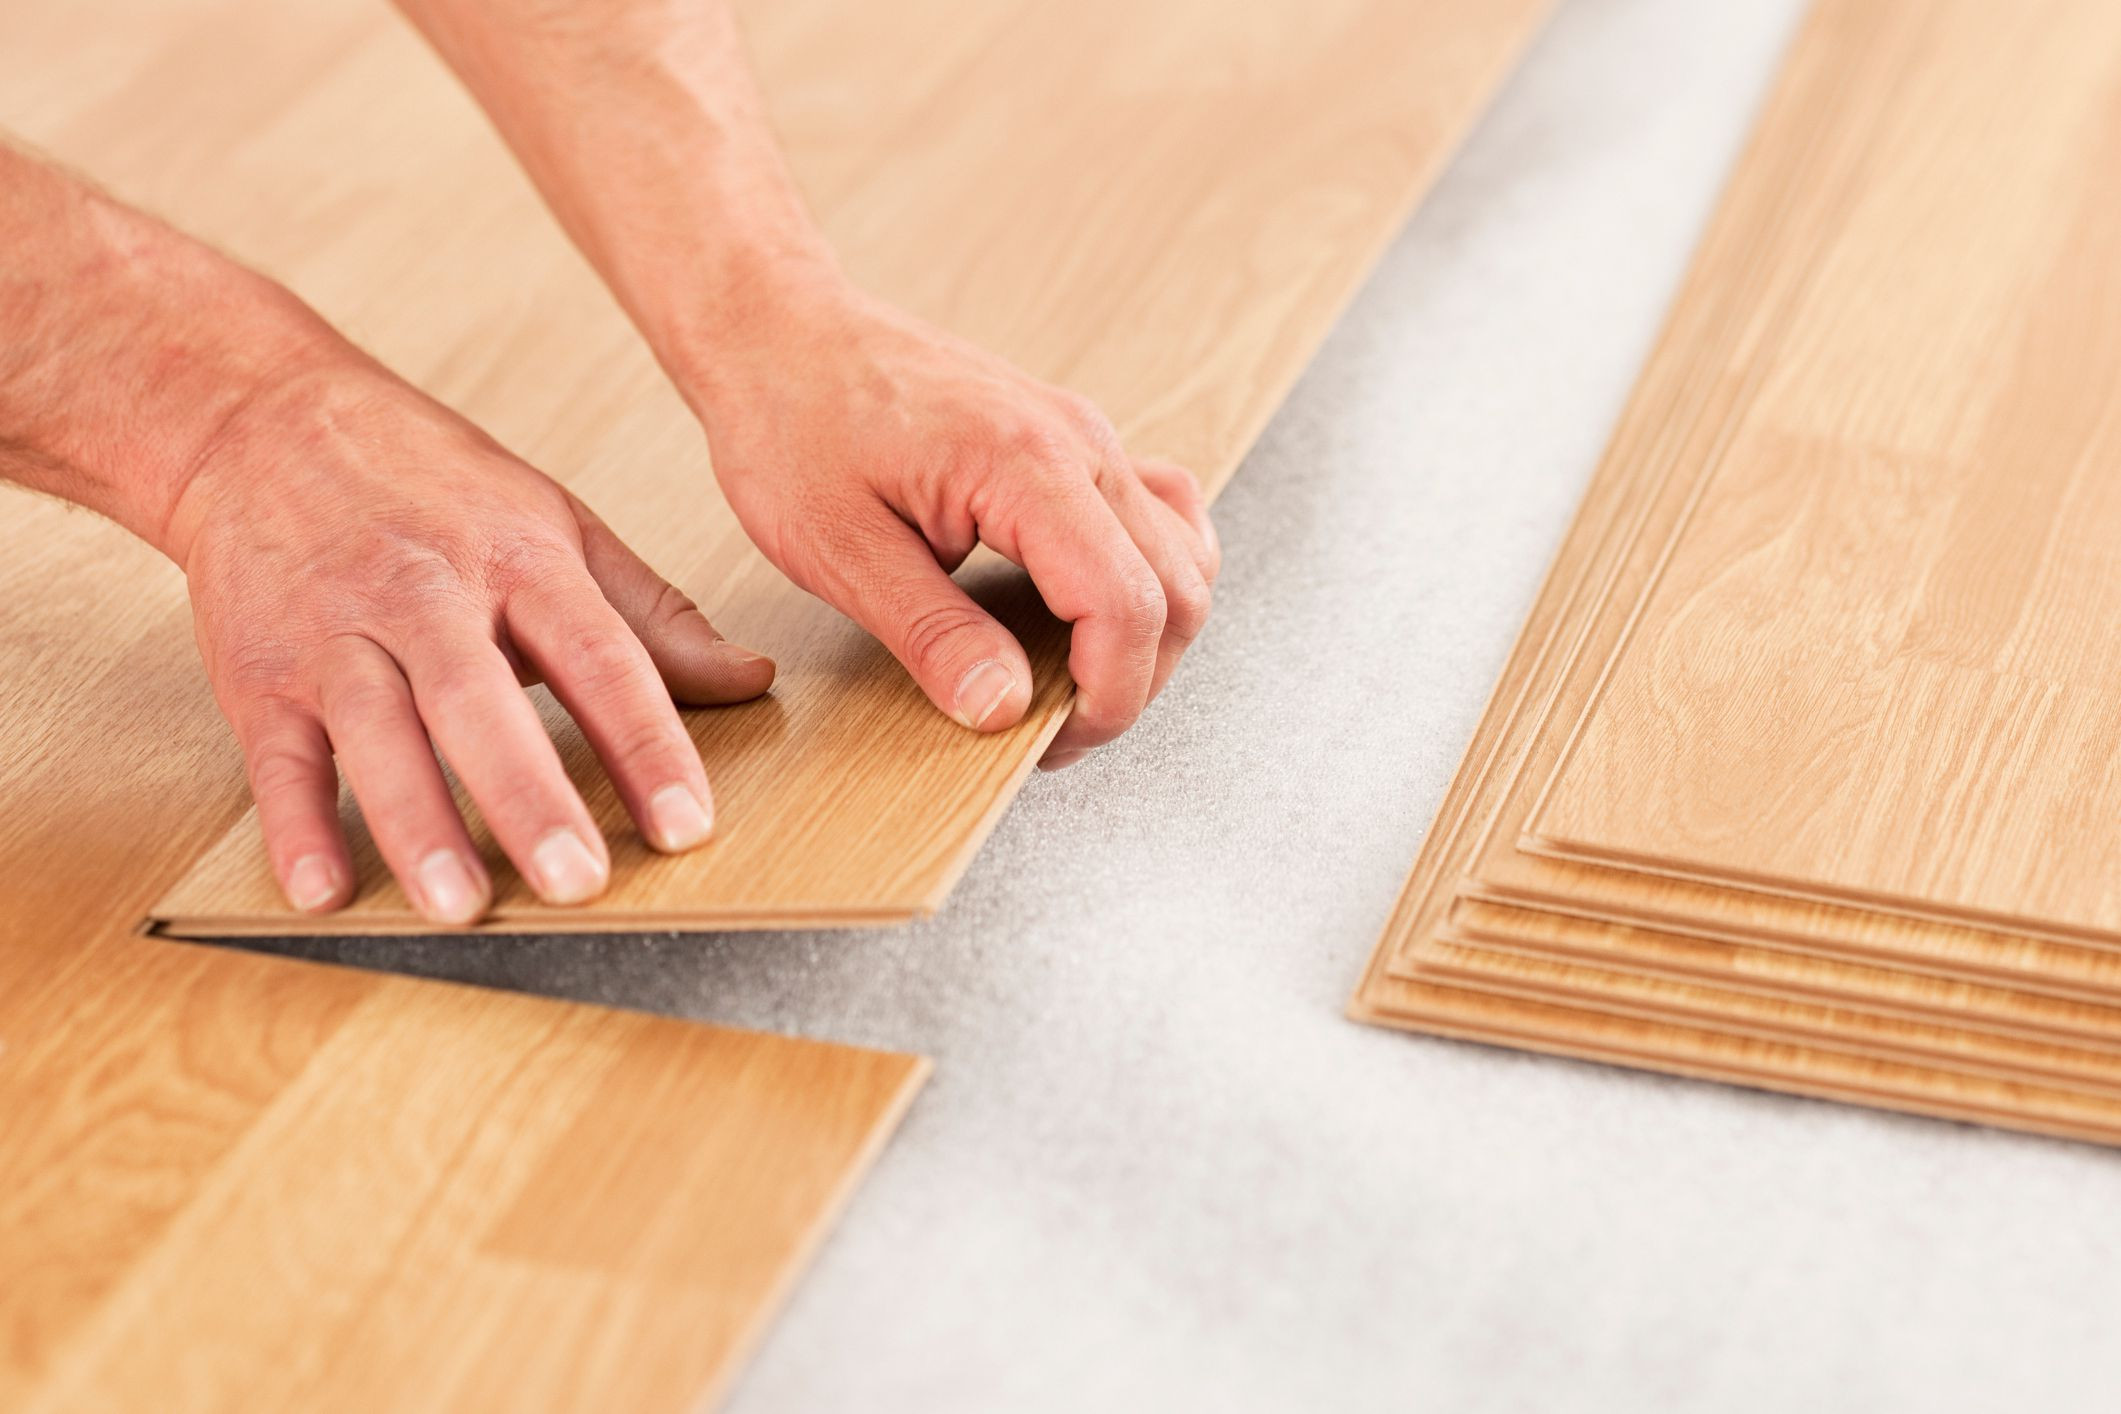 Underlayment for Bamboo Hardwood Flooring Of Laminate Underlayment Pros and Cons Pertaining to Laminate Floor Install Gettyimages 154961561 588816495f9b58bdb3da1a02